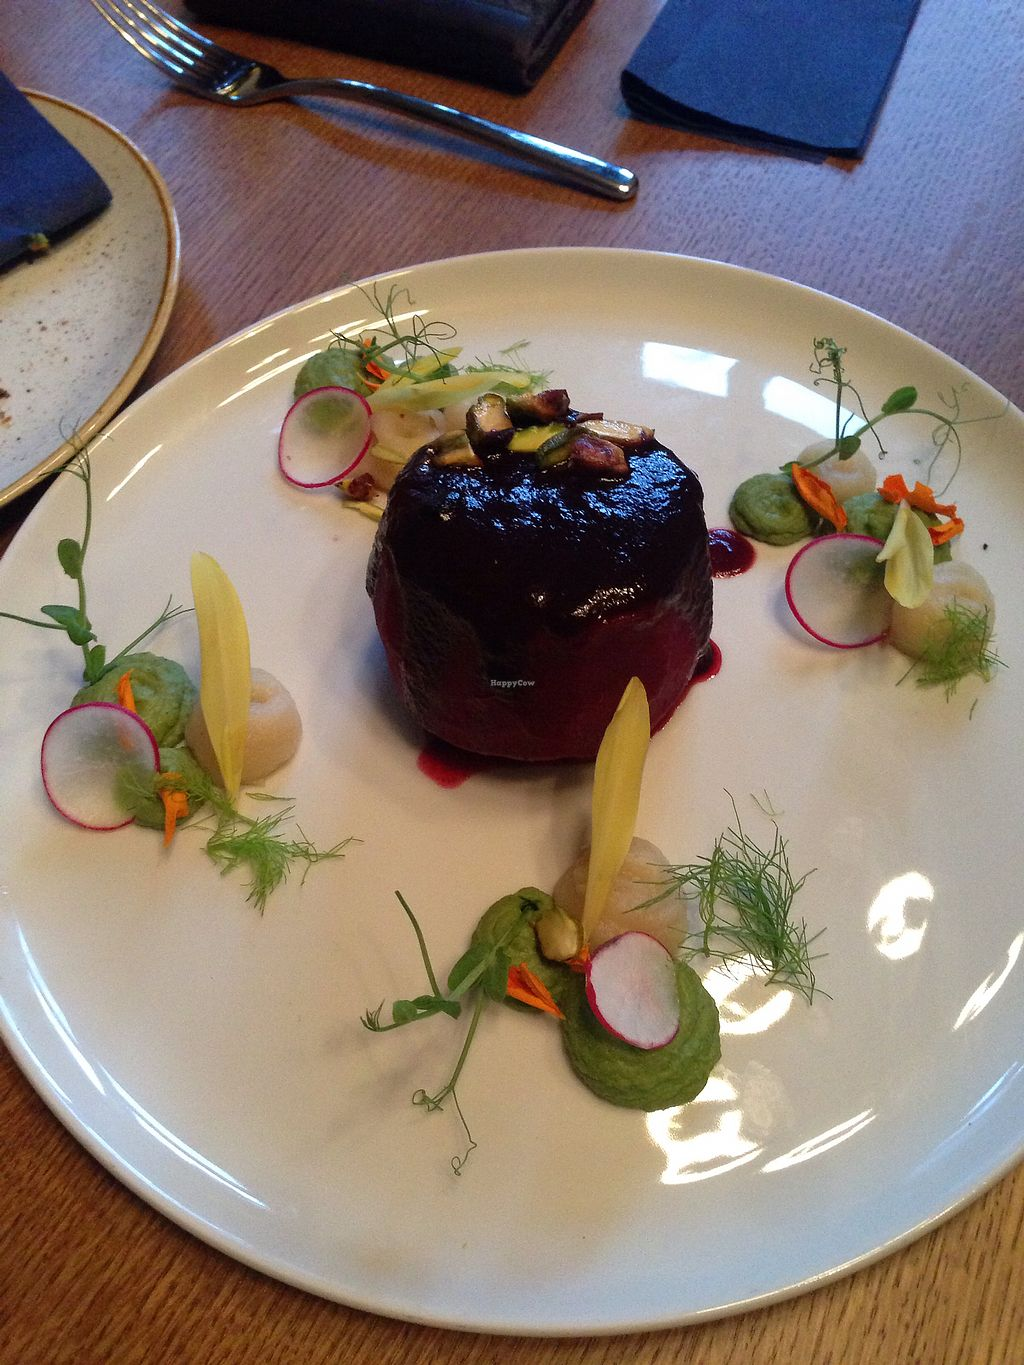 "Photo of Soul Kitchen  by <a href=""/members/profile/RenzBassant"">RenzBassant</a> <br/>Beet steak <br/> July 4, 2017  - <a href='/contact/abuse/image/40791/276669'>Report</a>"